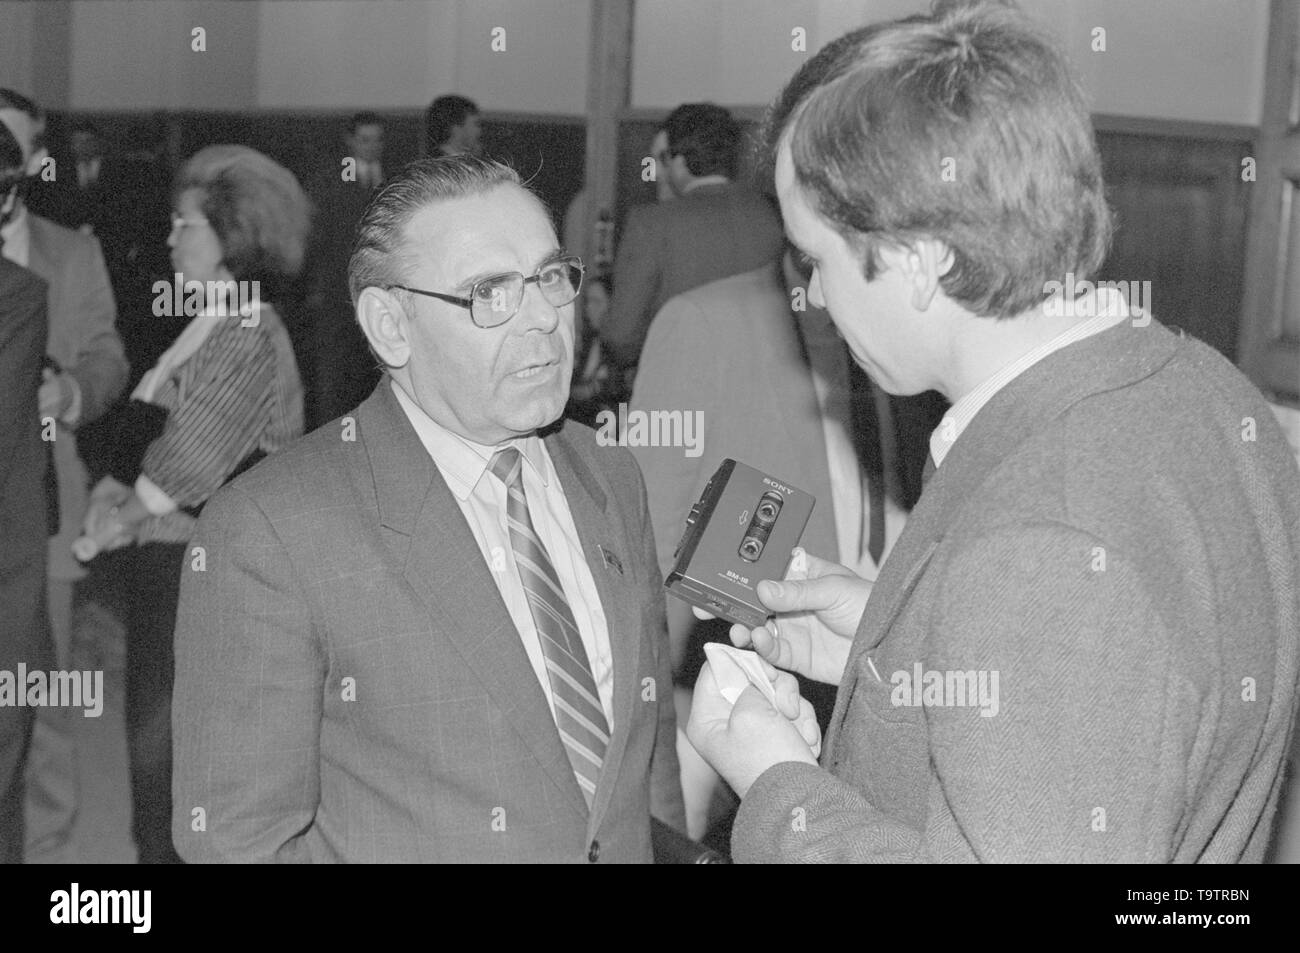 Moscow, Russia - July 07, 1991: Leader of the Communst party of russian RSFSR Ivan Kuzmich Polozkov talks to corespondent at 3d extraordinary Congress of people's deputies of russian RSFSR. - Stock Image